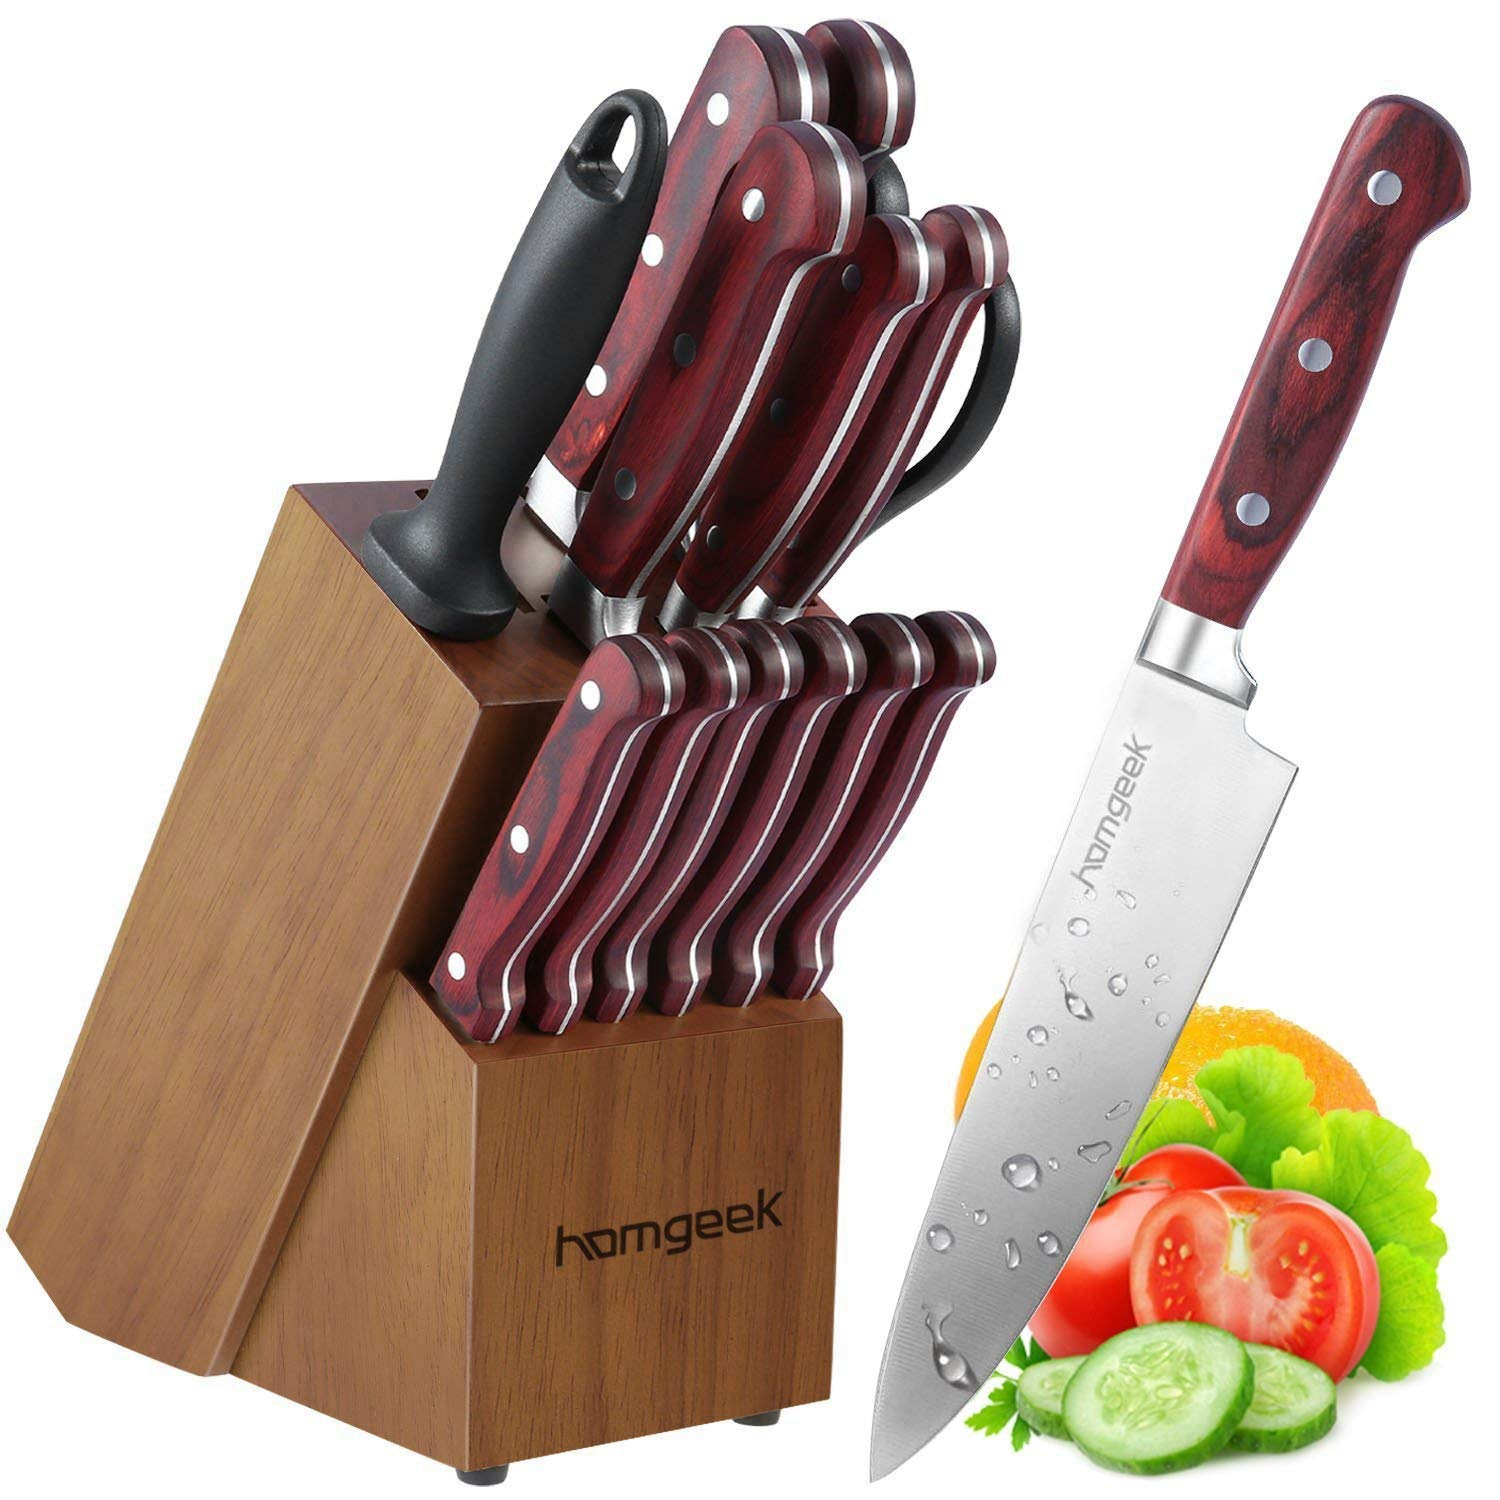 Set coltelli cucina homgeek